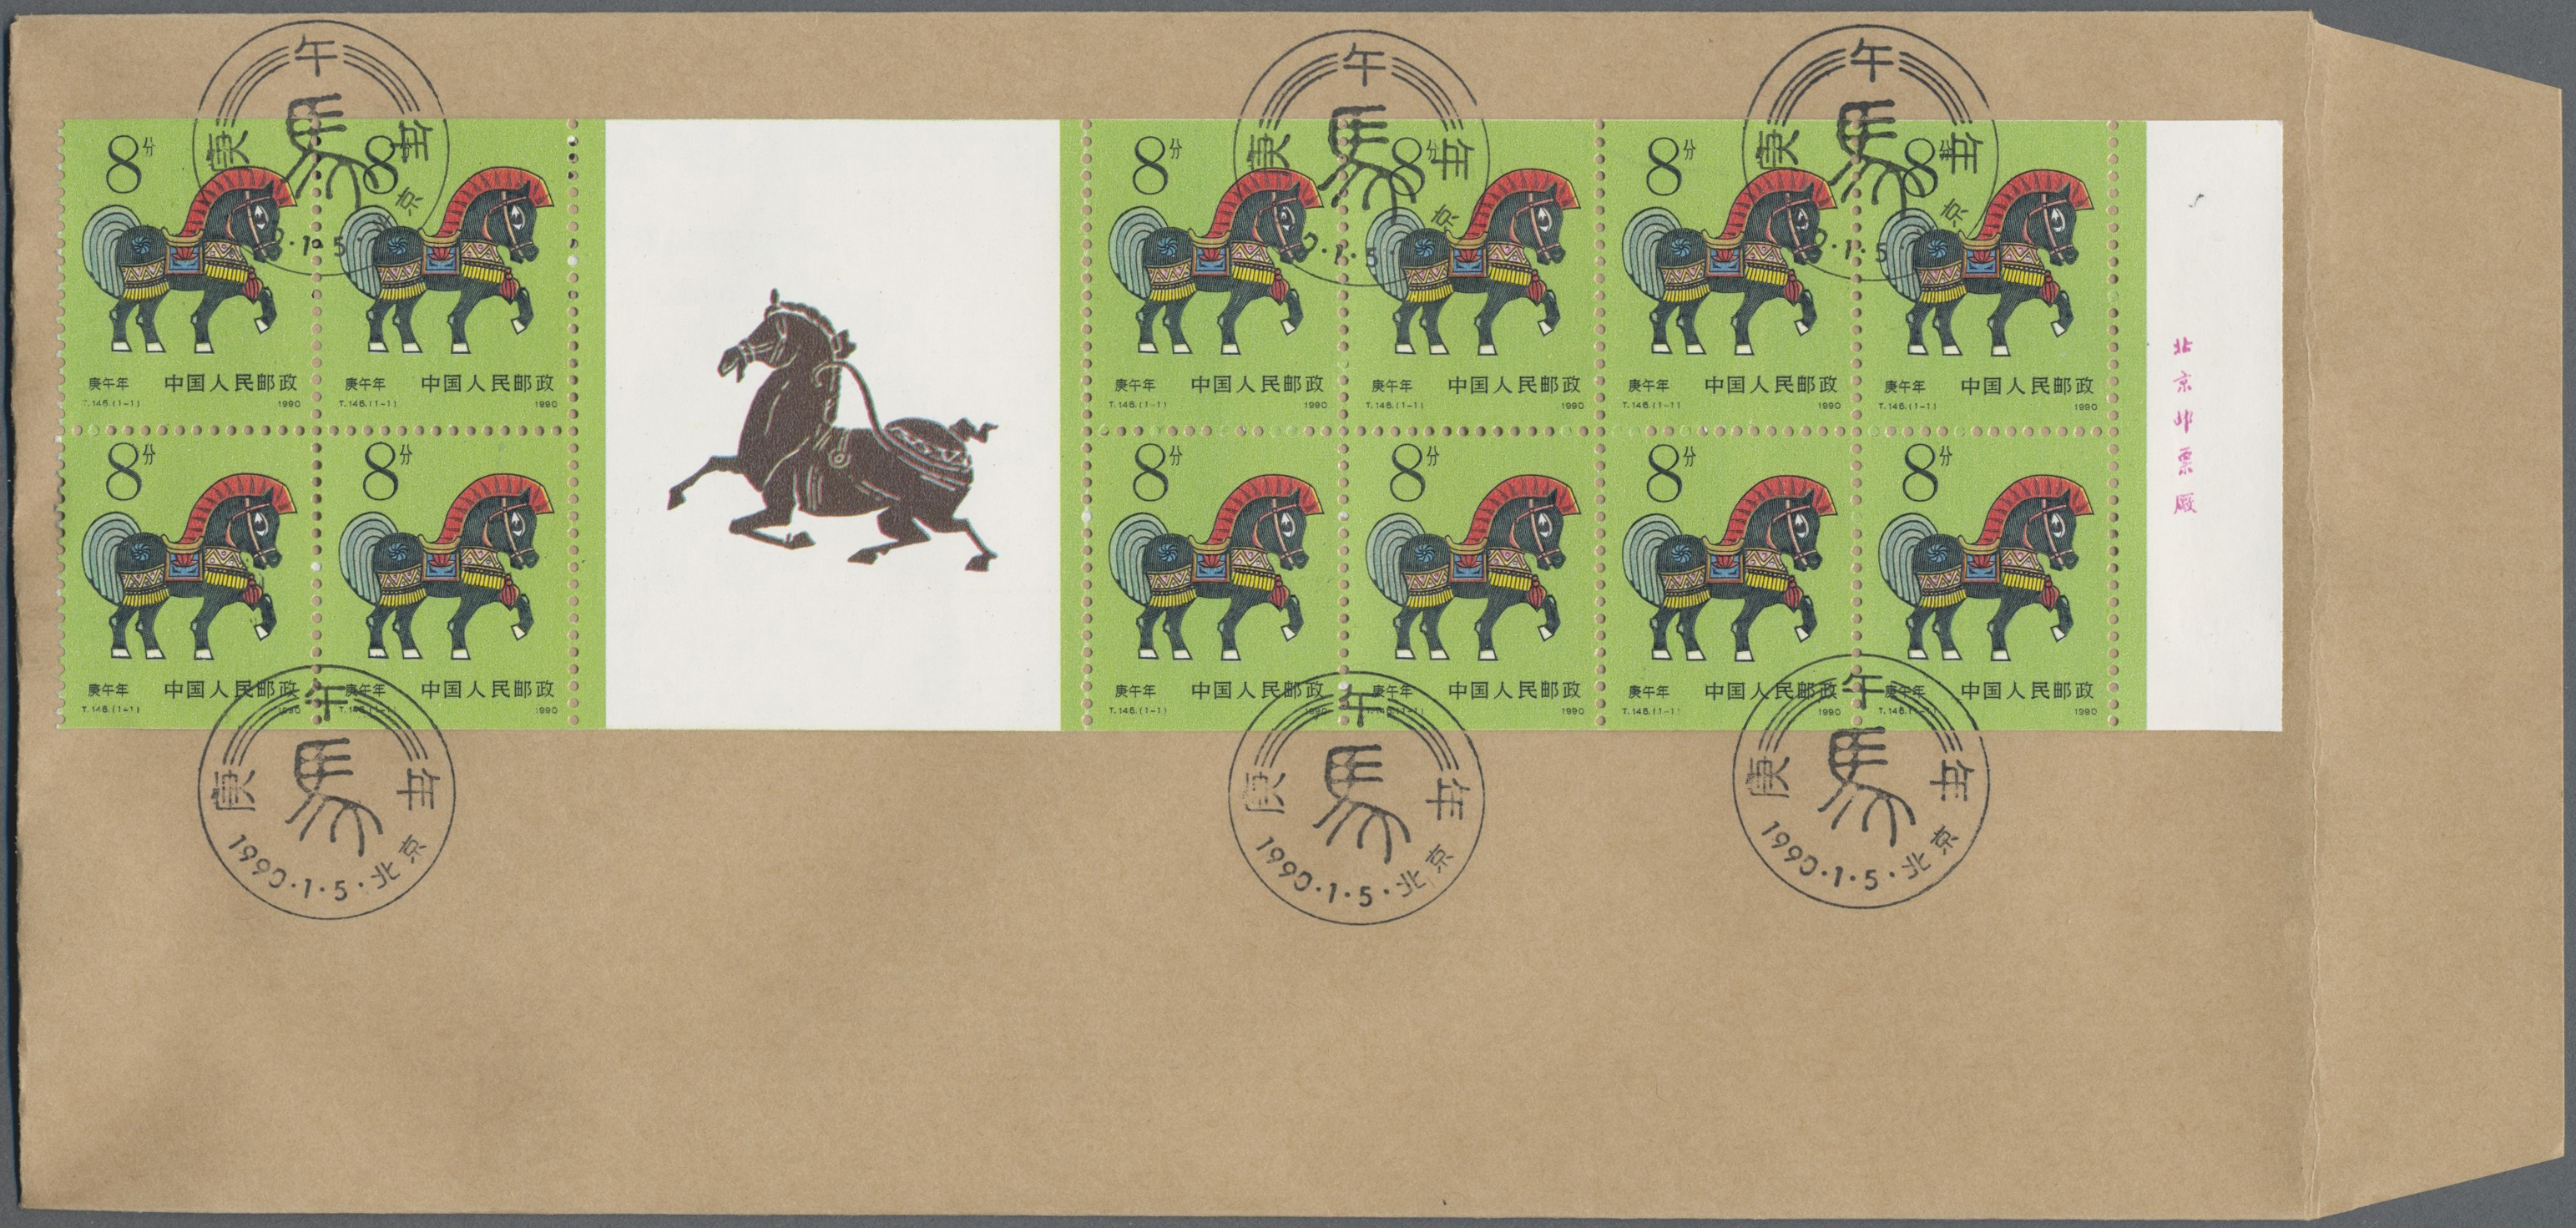 Lot 34617 - China - Volksrepublik  -  Auktionshaus Christoph Gärtner GmbH & Co. KG Sale #44 Collections Germany